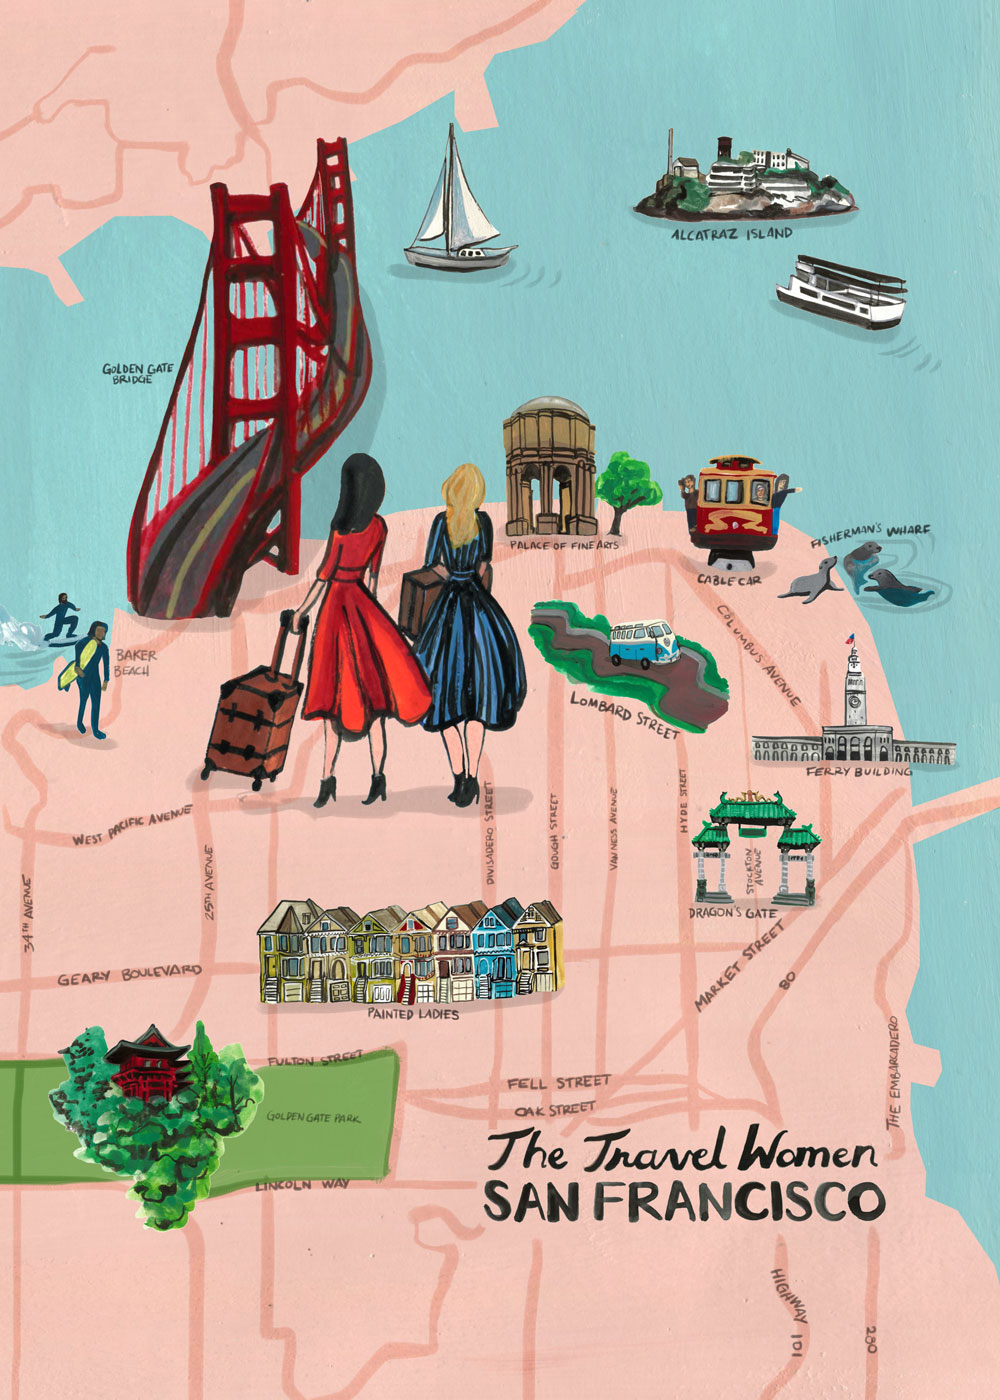 Illustrated pink map of top places in San Francisco